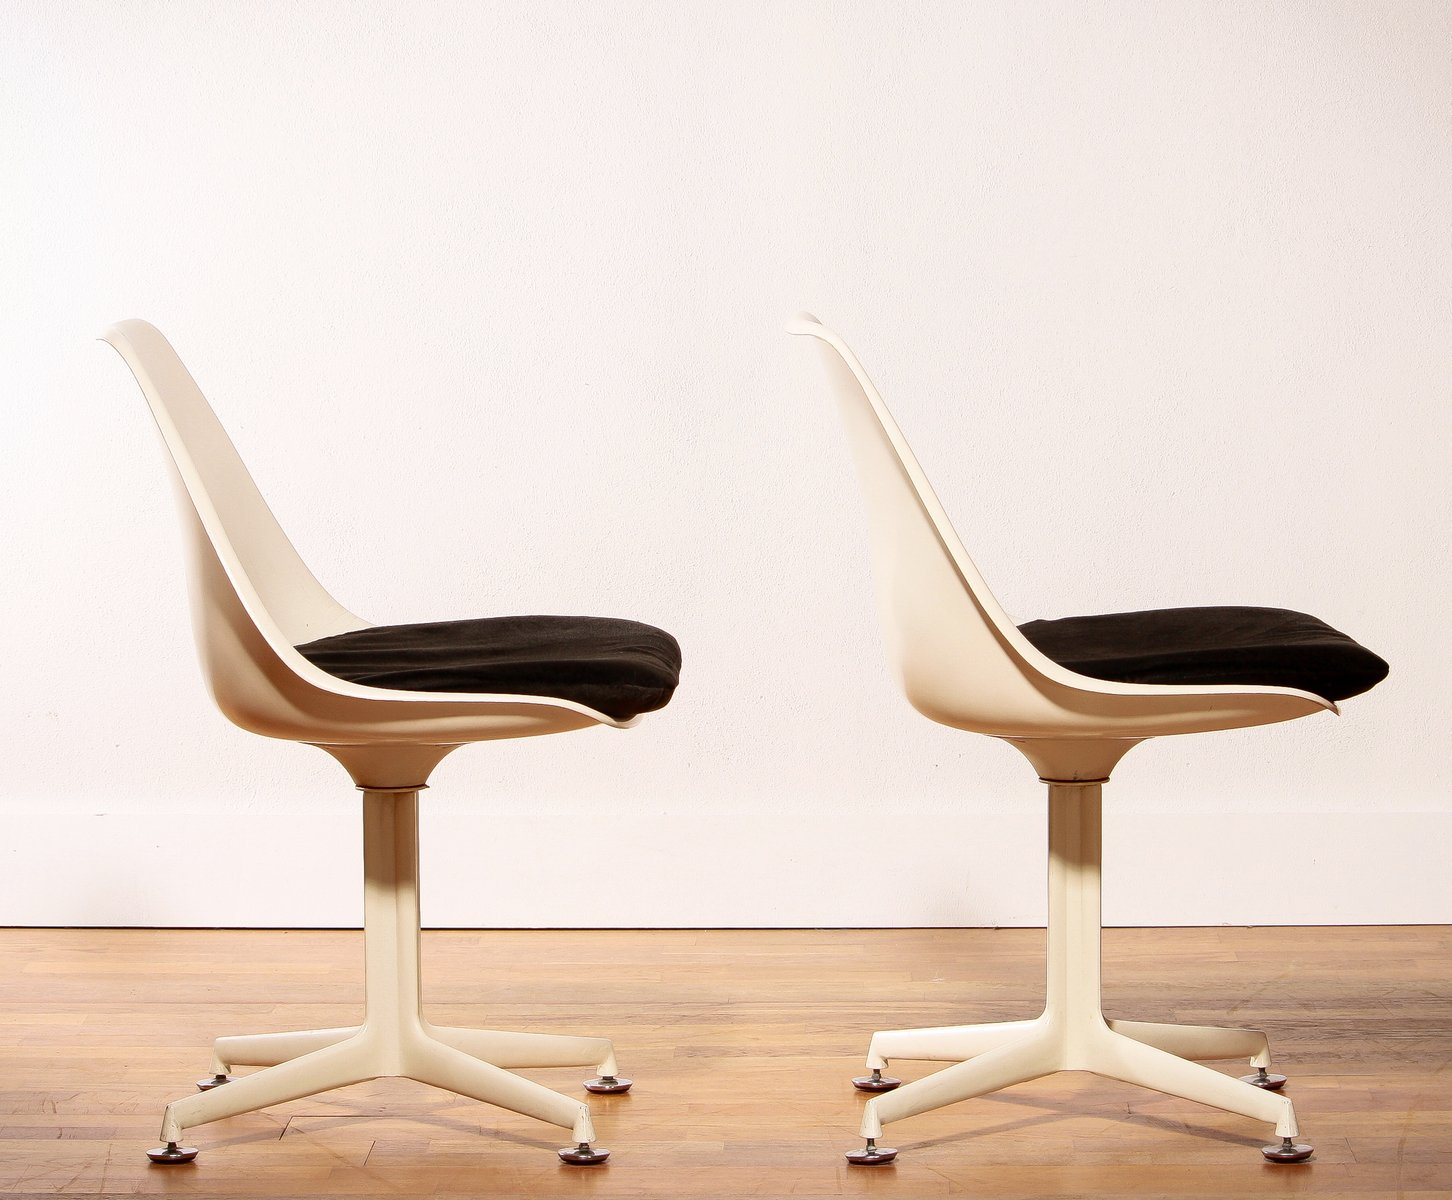 Tulip chairs by maurice burke for arkana 1960s set of 2 for sale at pamono - Tulip chairs for sale ...